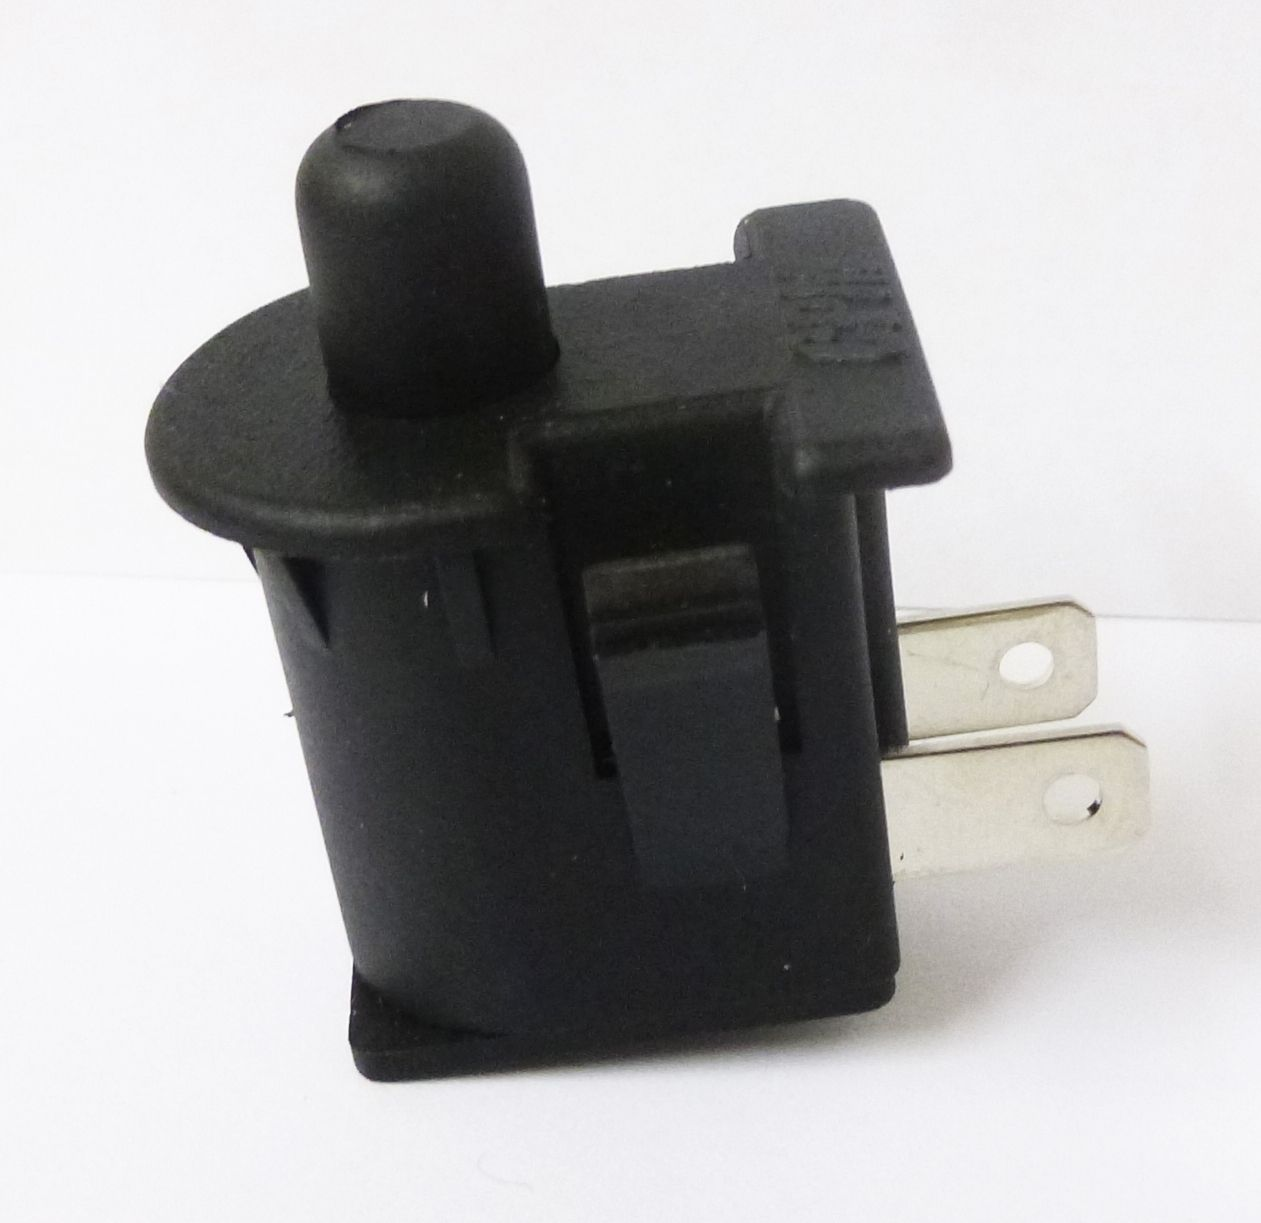 John Deere 445 Tractor Seats Replacement : Seat safety switch for john deere z r